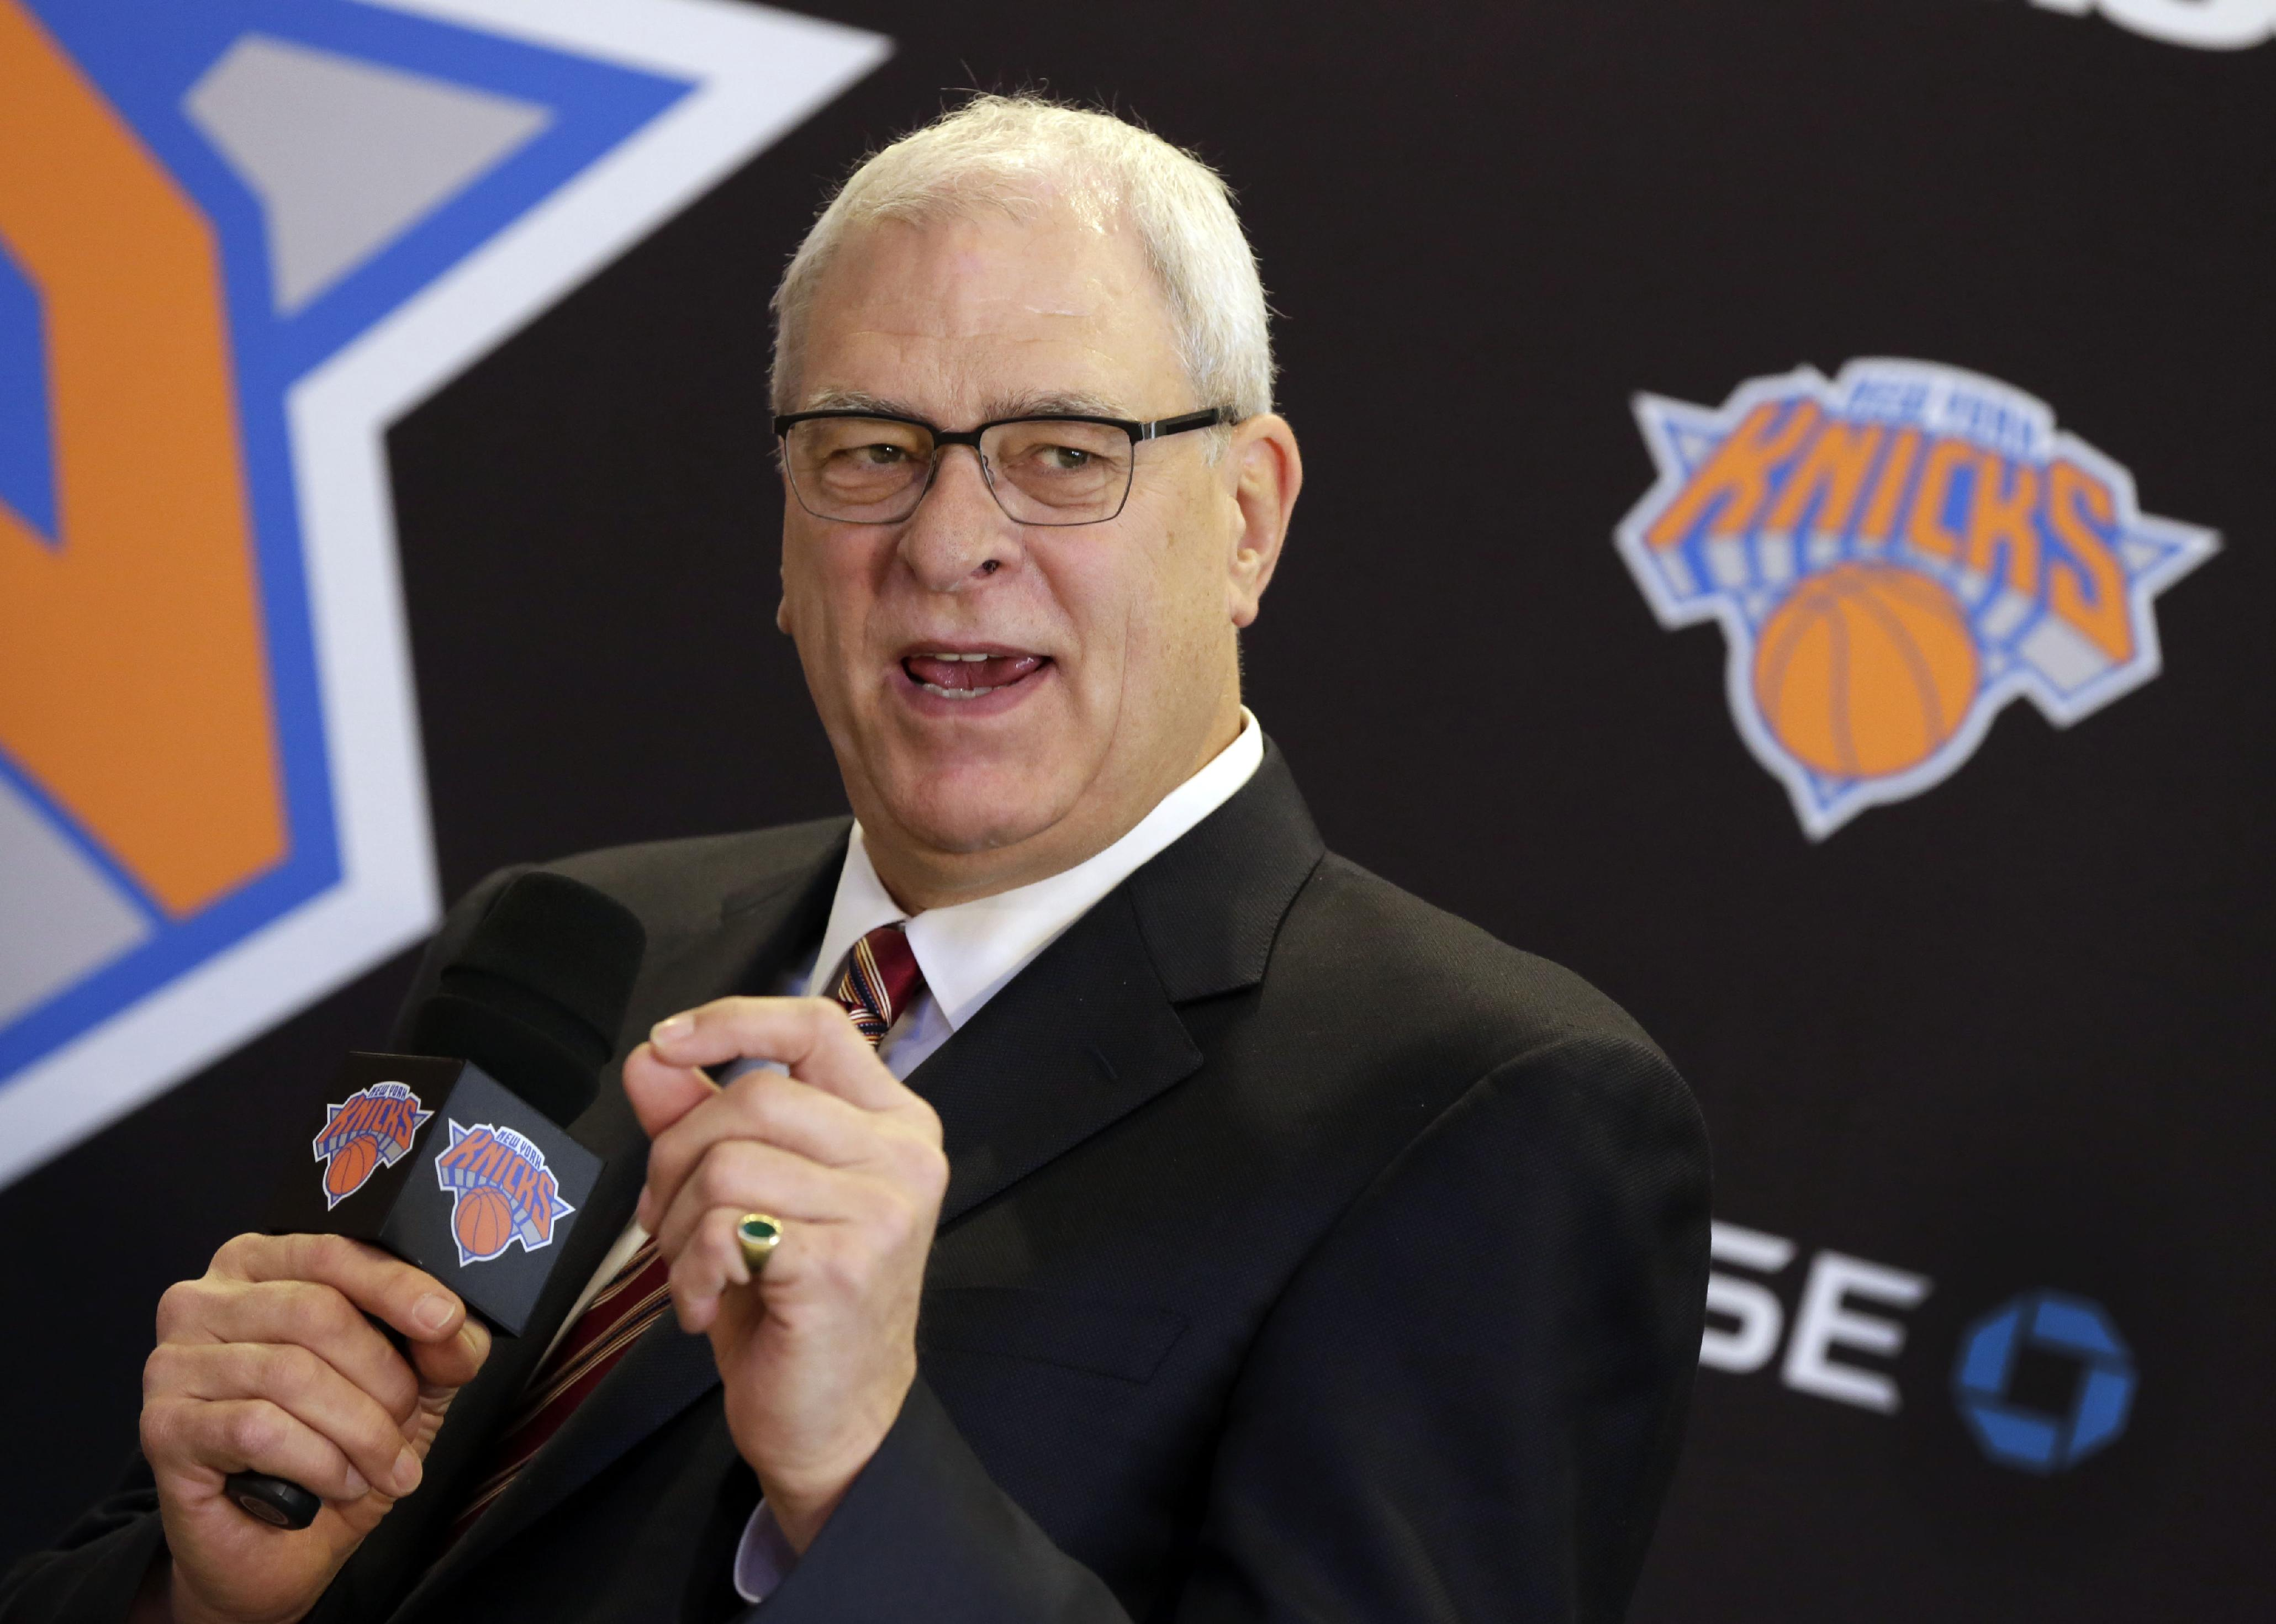 New York Knicks new team president Phil Jackson responds to a question during a news conference where he was introduced, at New York's Madison Square Garden, Tuesday, March 18, 2014. Jackson signed a five-year contract that will reportedly pay him at least $12 million annually and said he will spend significant time in New York